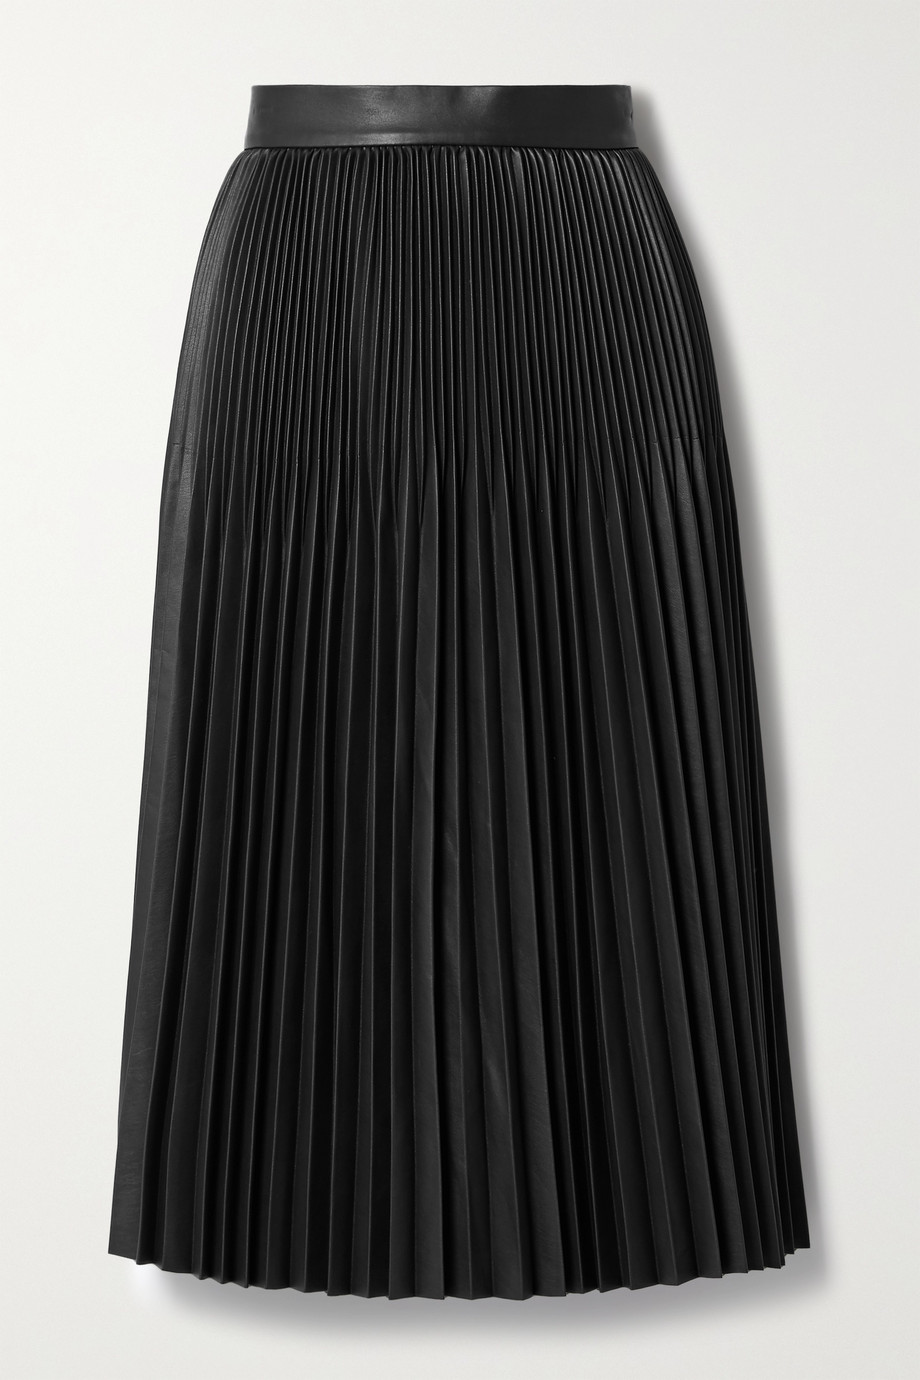 Jason Wu Pleated faux leather midi skirt